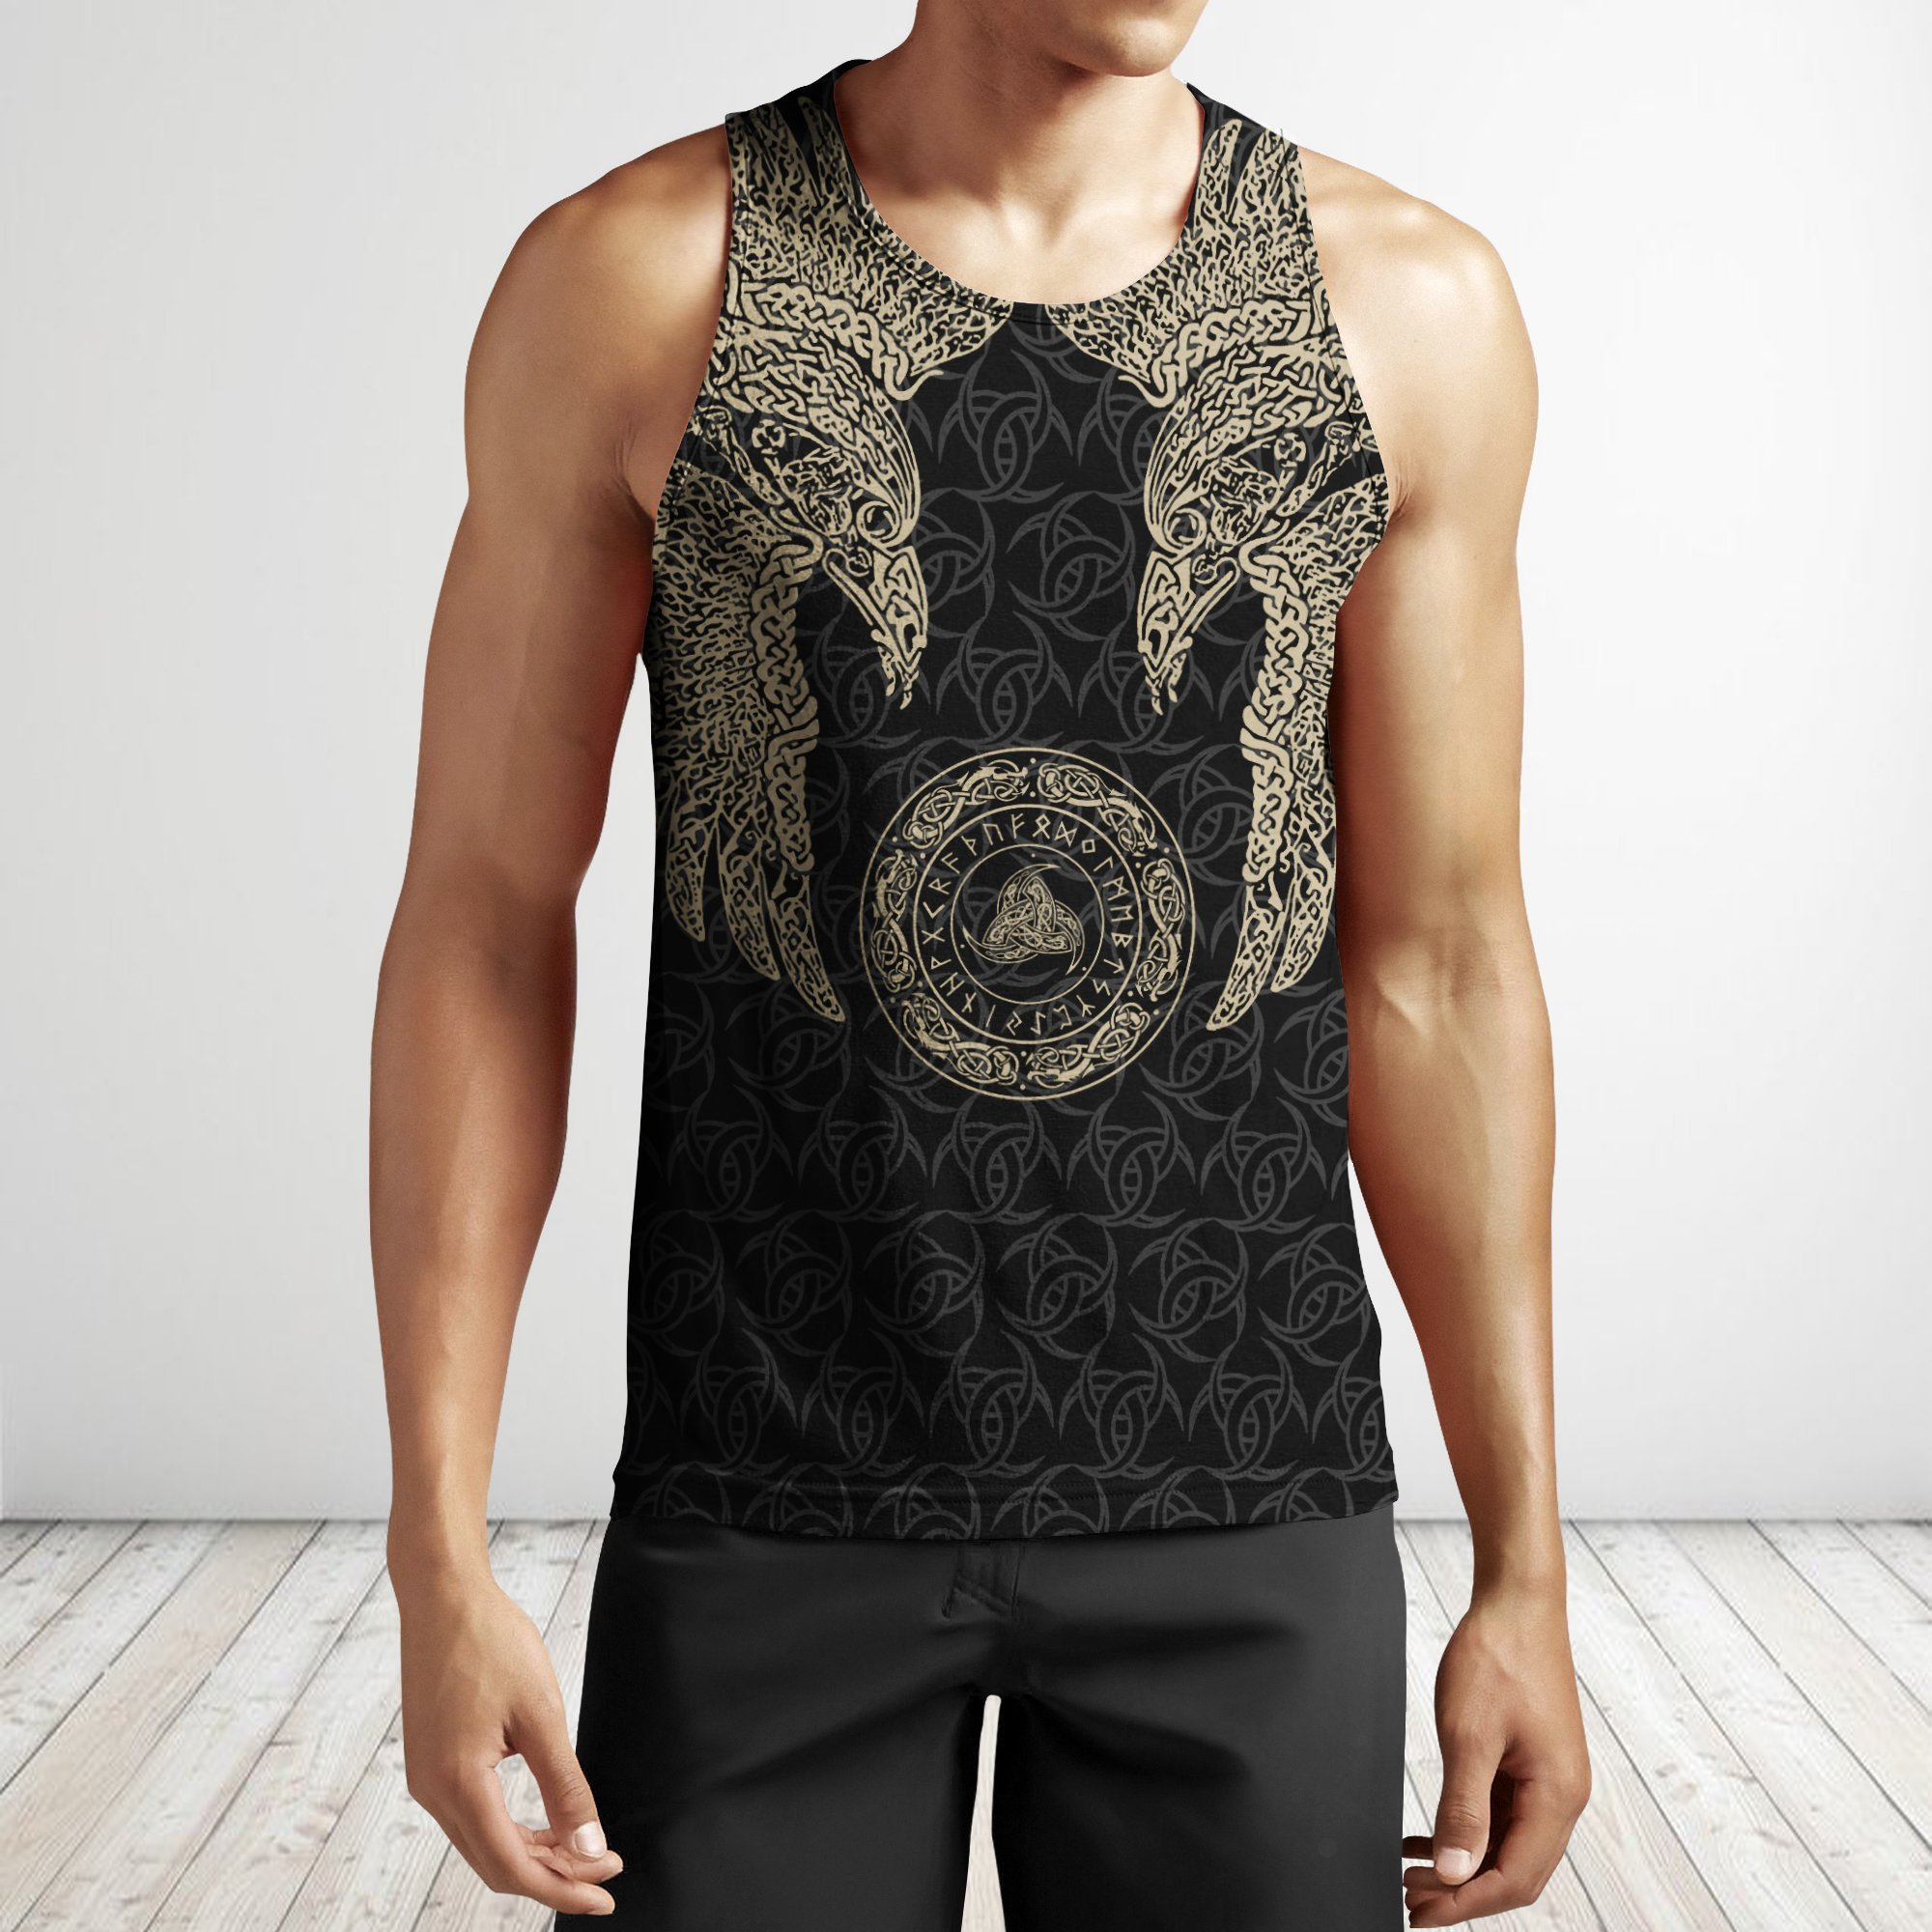 Odin's ravens viking all over printed tank top